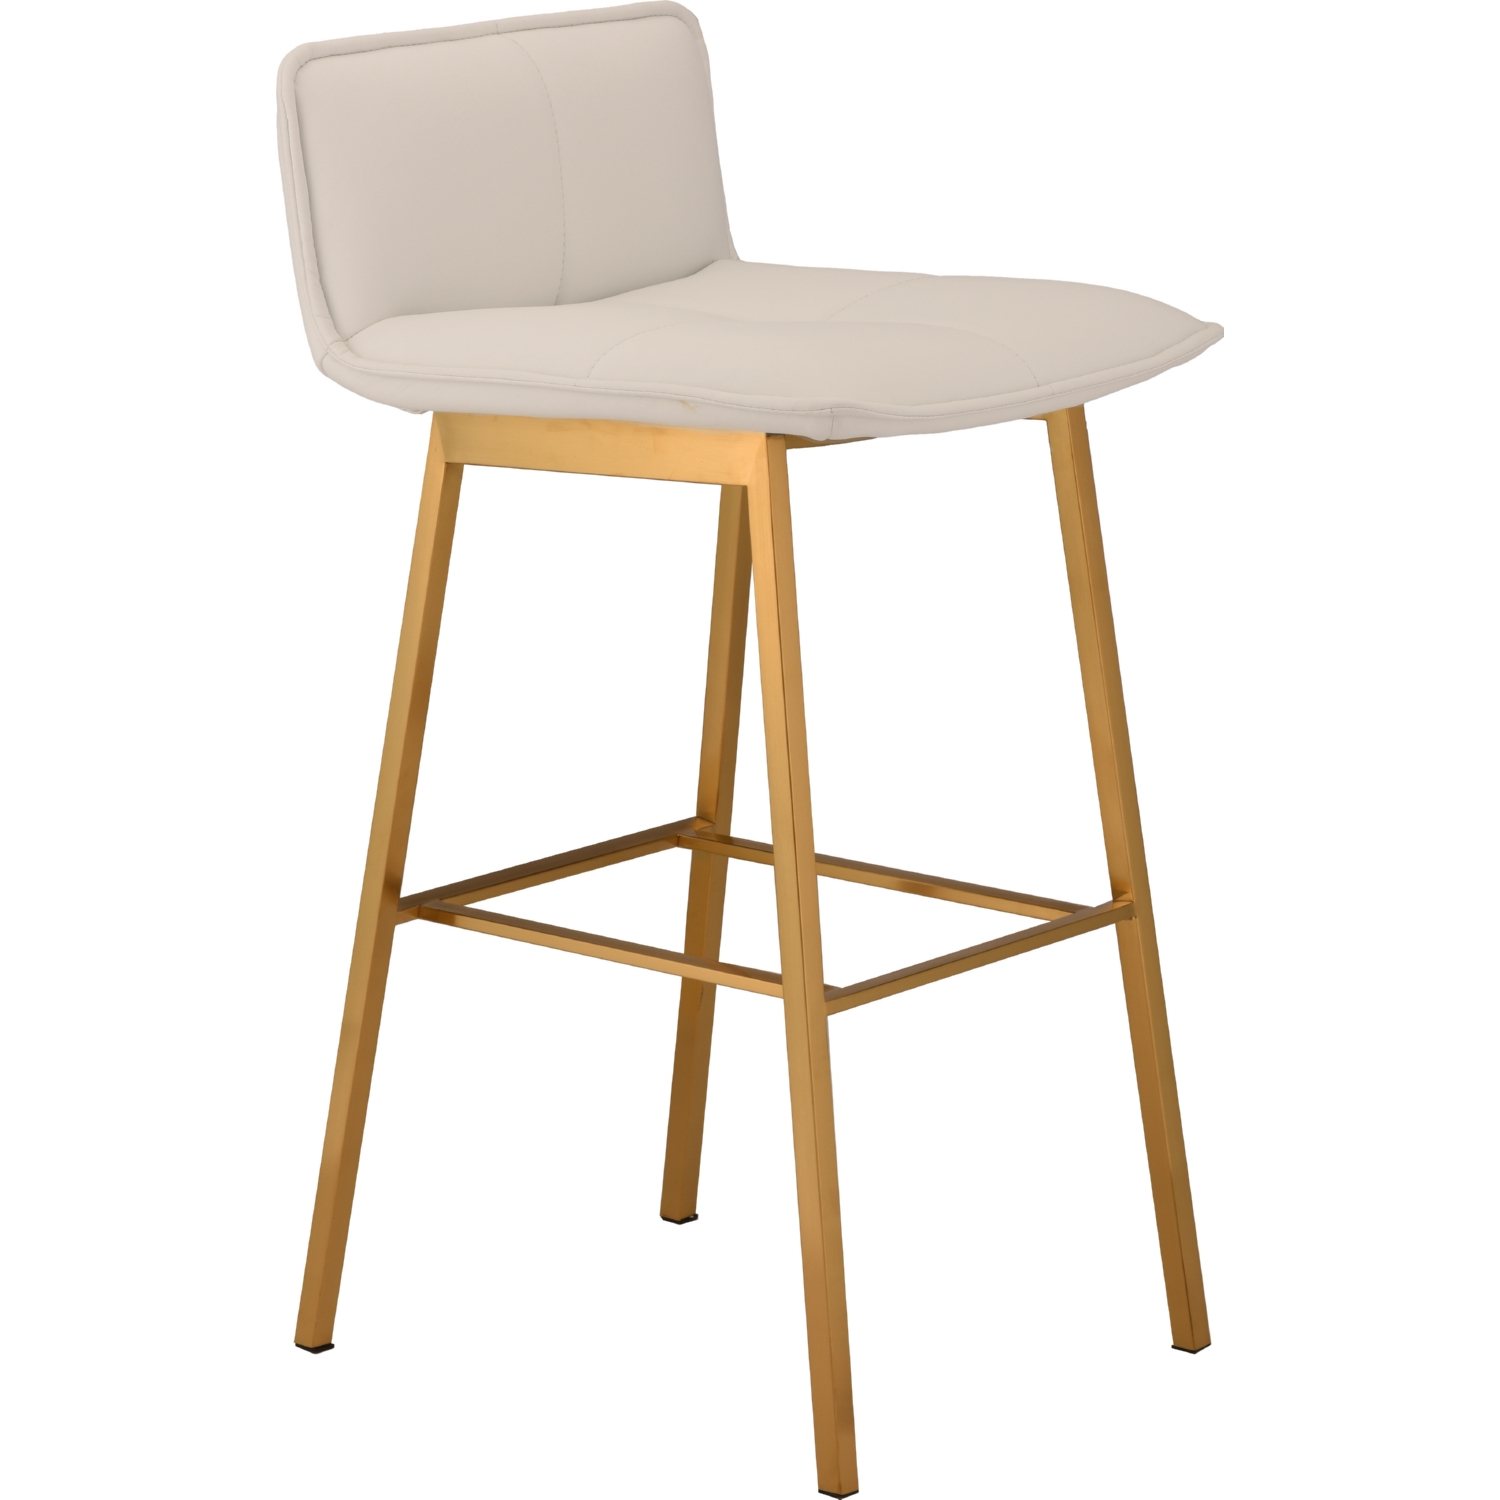 Sabrina counter stool in white naugahyde on brushed gold stainless base by nuevo modern furniture